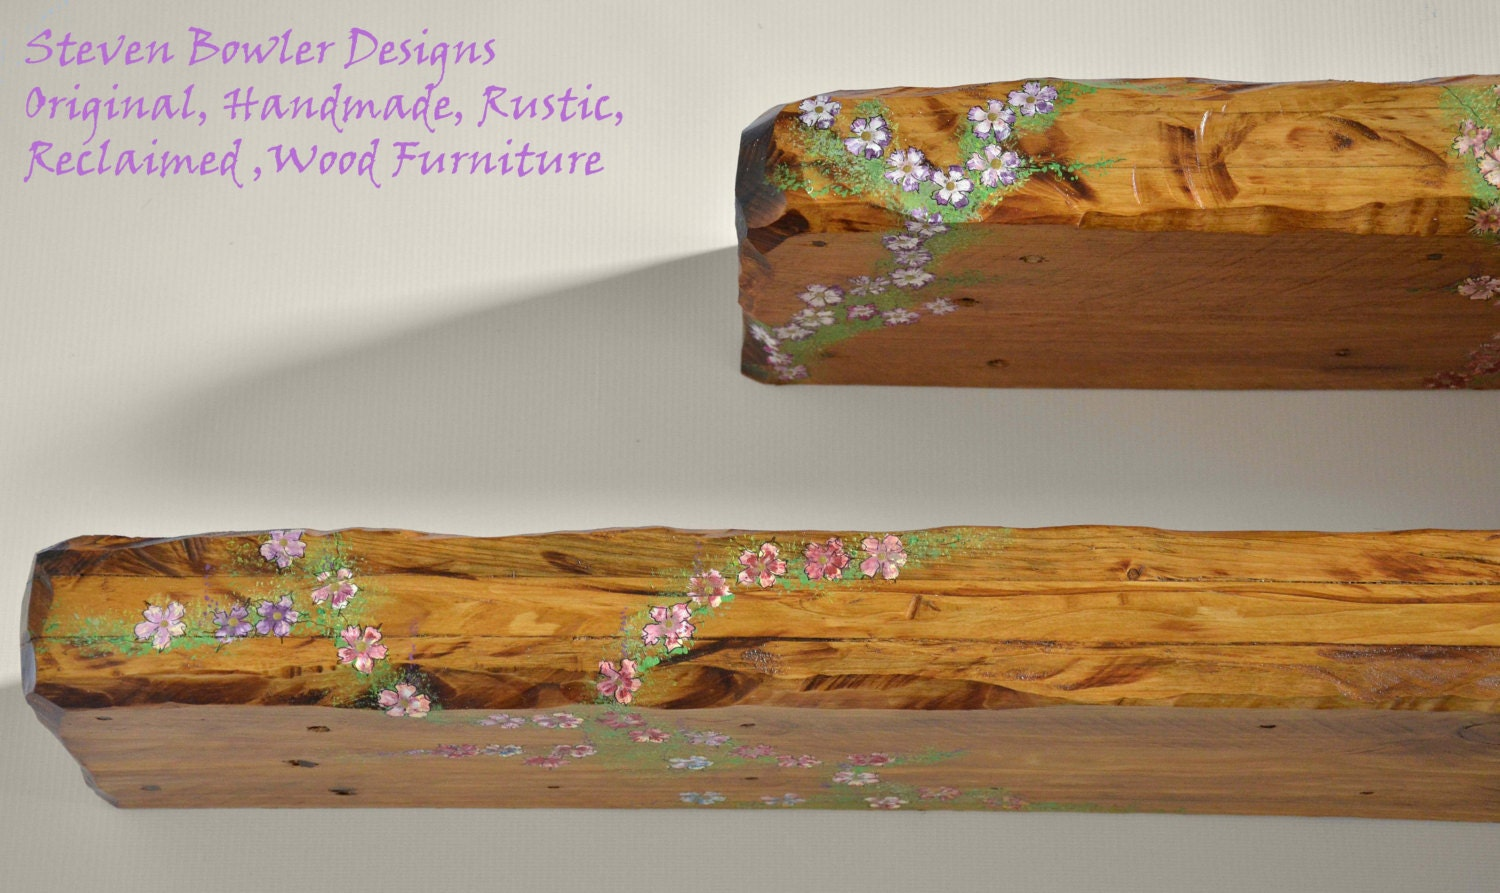 Bespoke Country Cottage Rustic Reclaimed Wood Floating Shelf in Warm Light Oak Stain with Decorative Flower Design Fixings Supplied